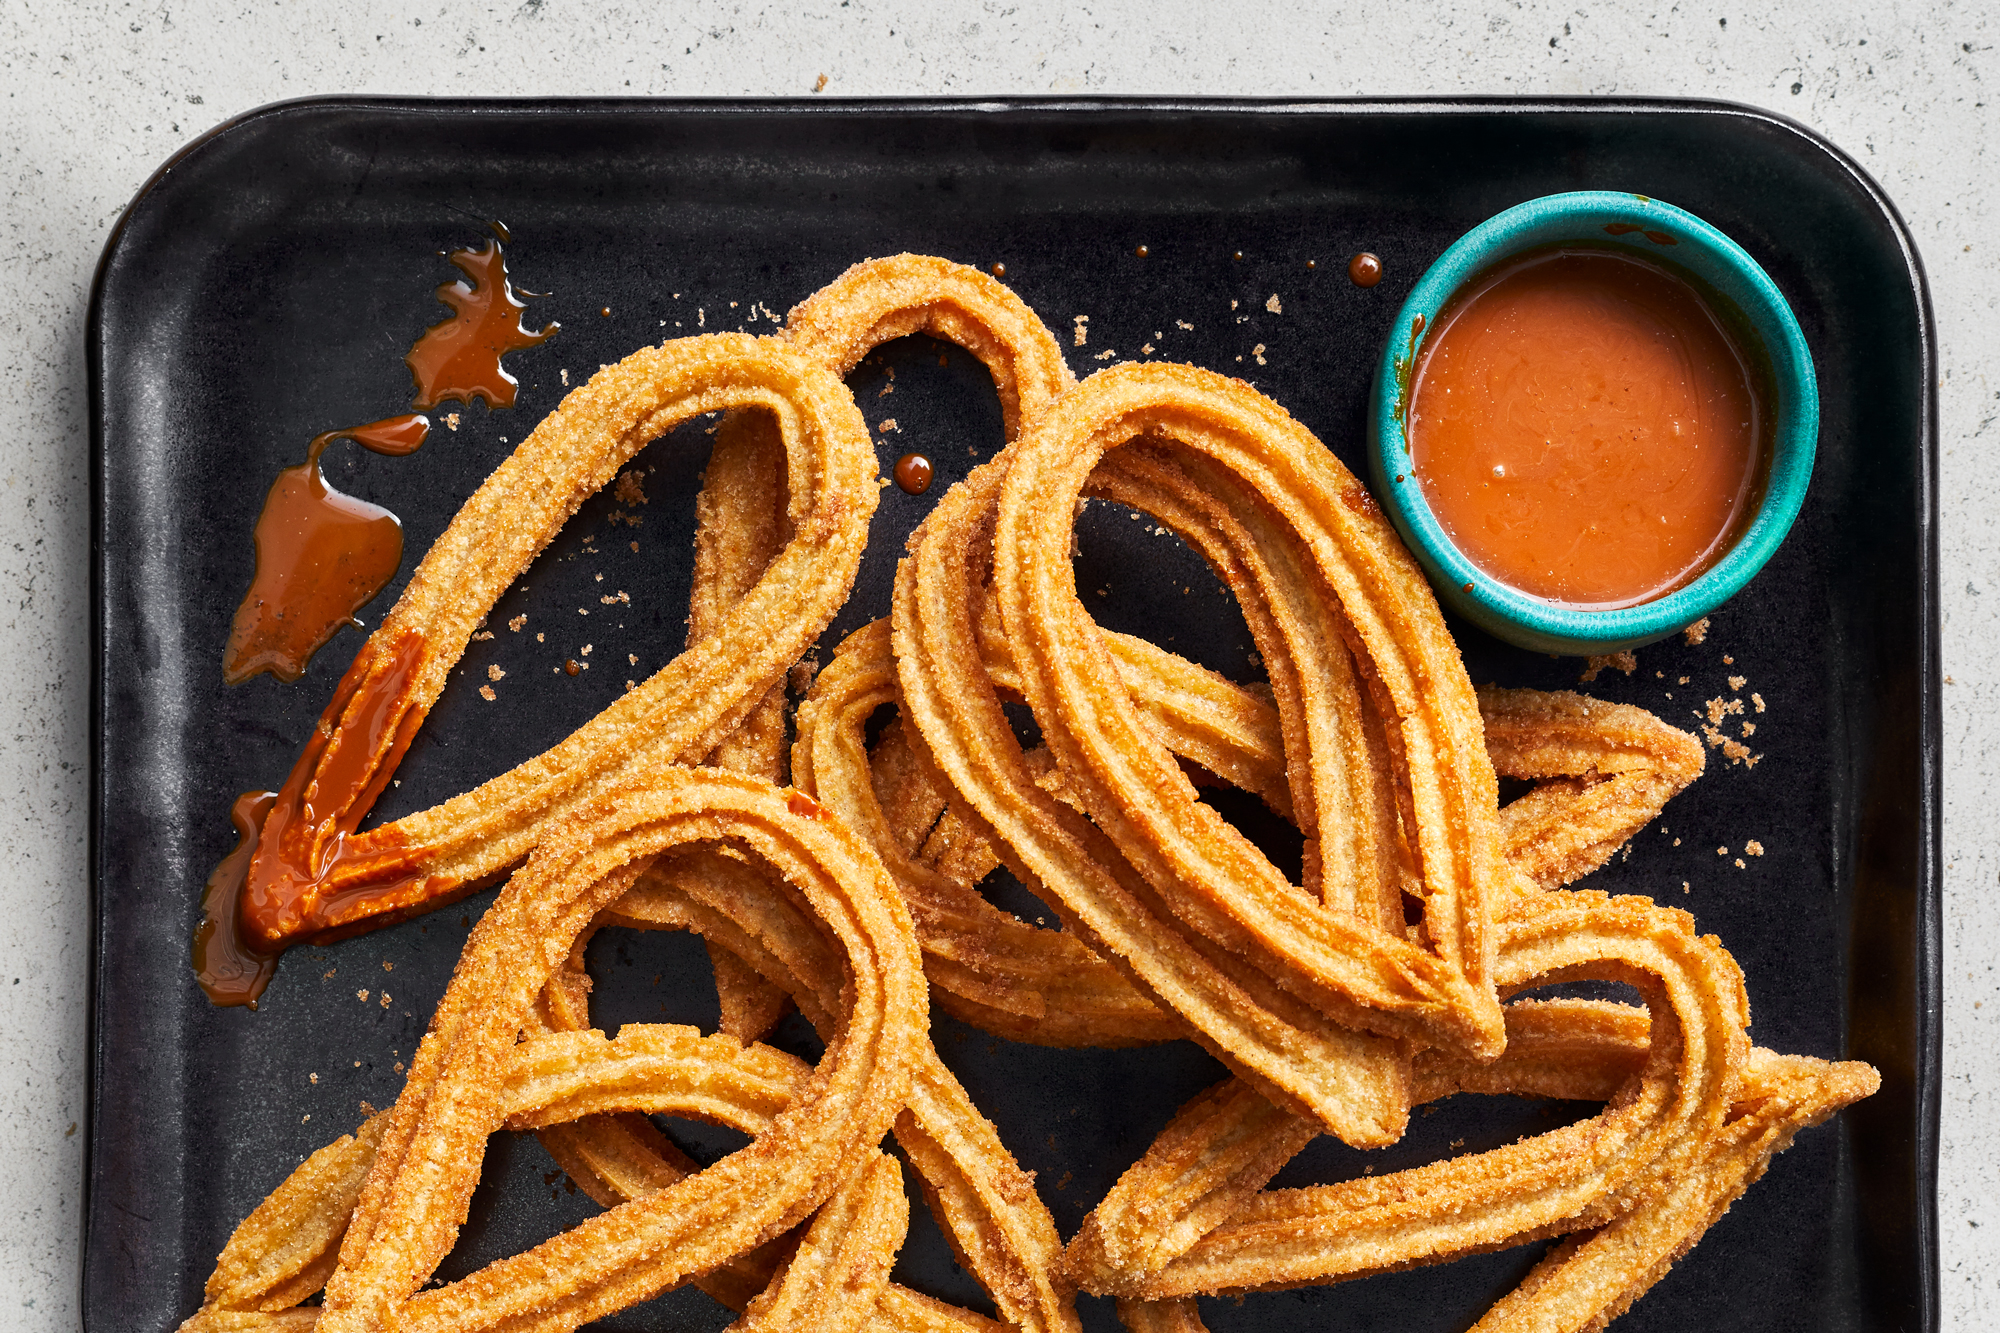 Cinnamon-Sugar Churros with Cajeta